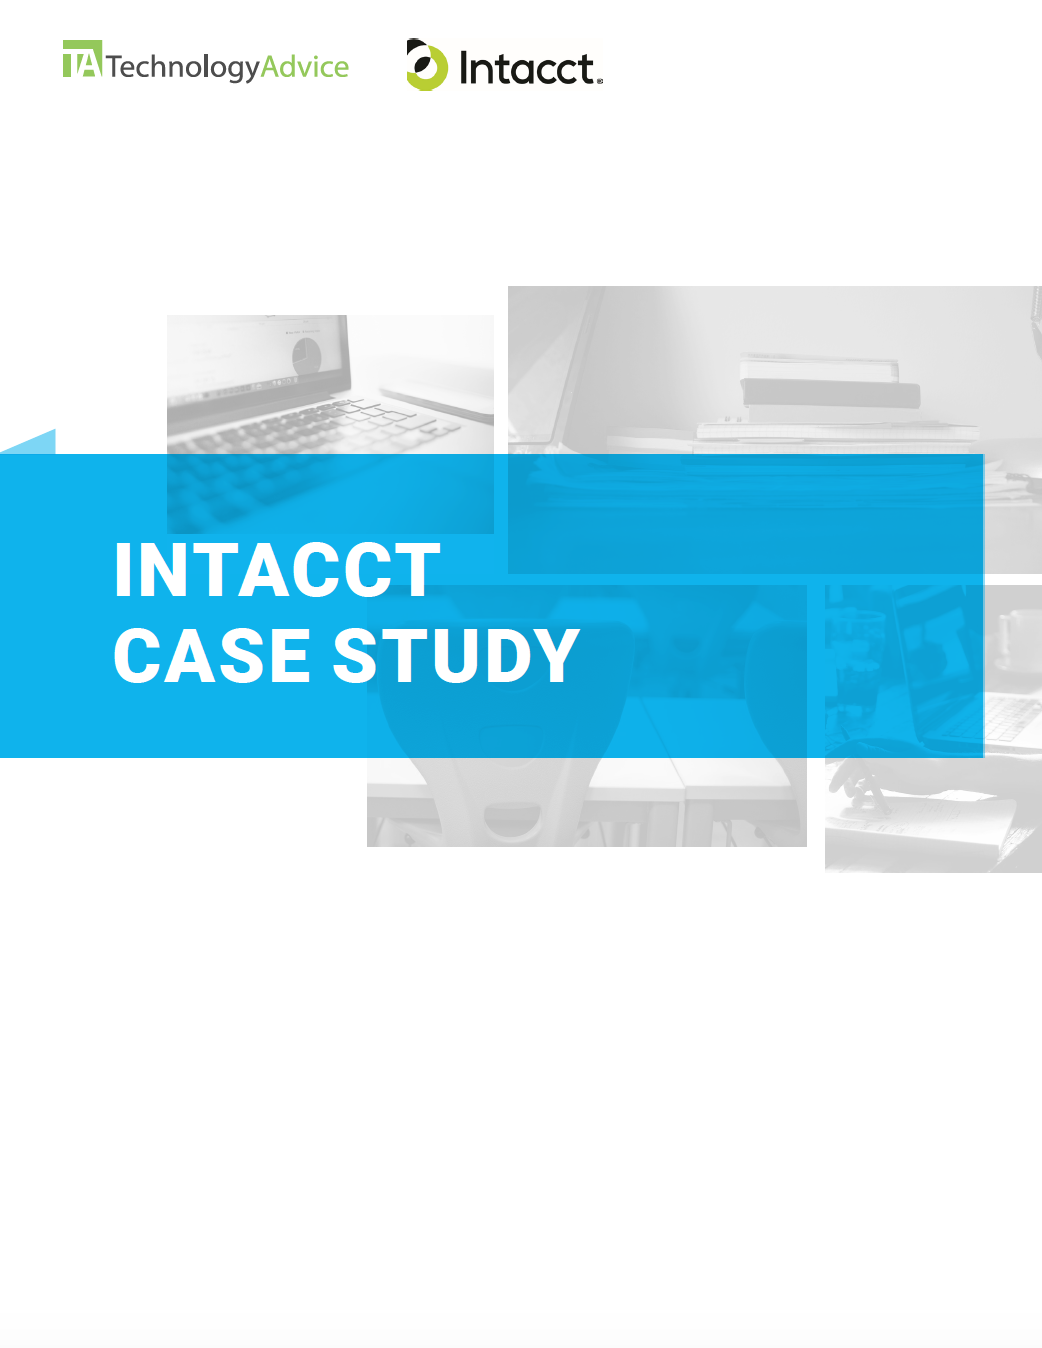 TechnologyAdvice Case Study: Intacct Content Syndication